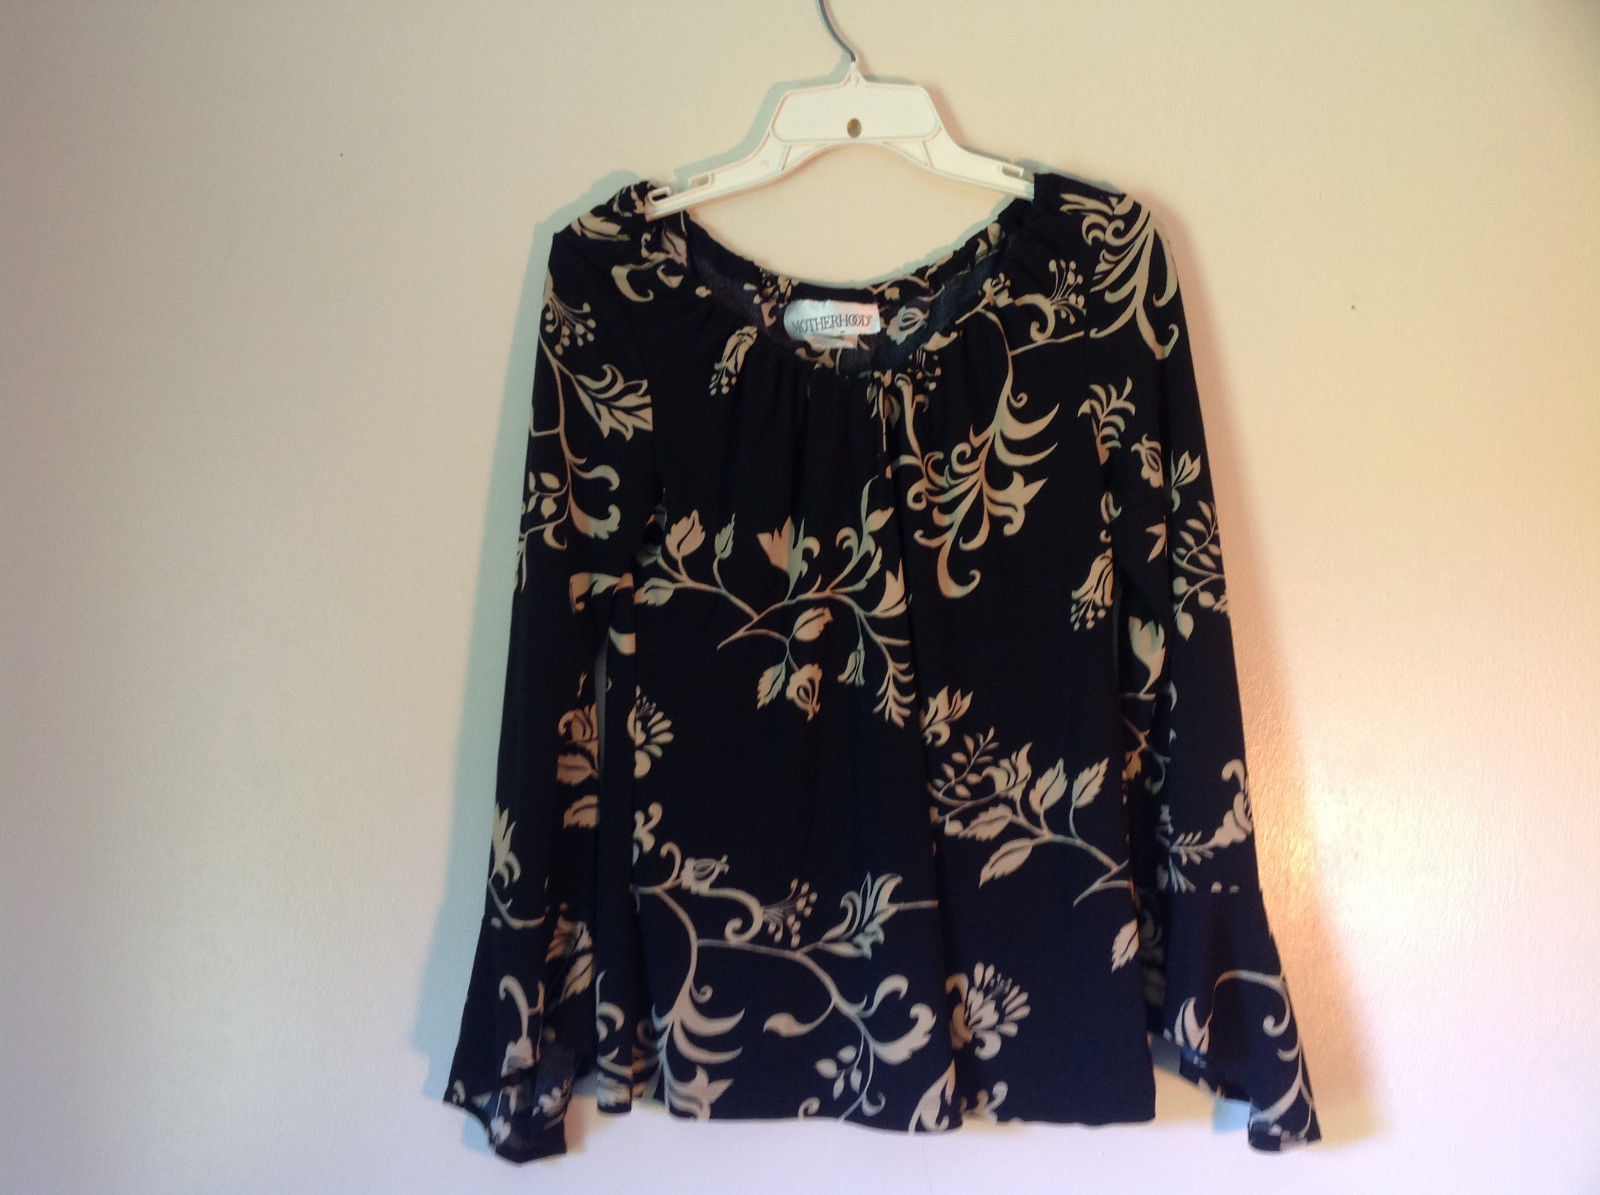 Black and White Flowered Print Motherhood Top Size Medium Made in USA